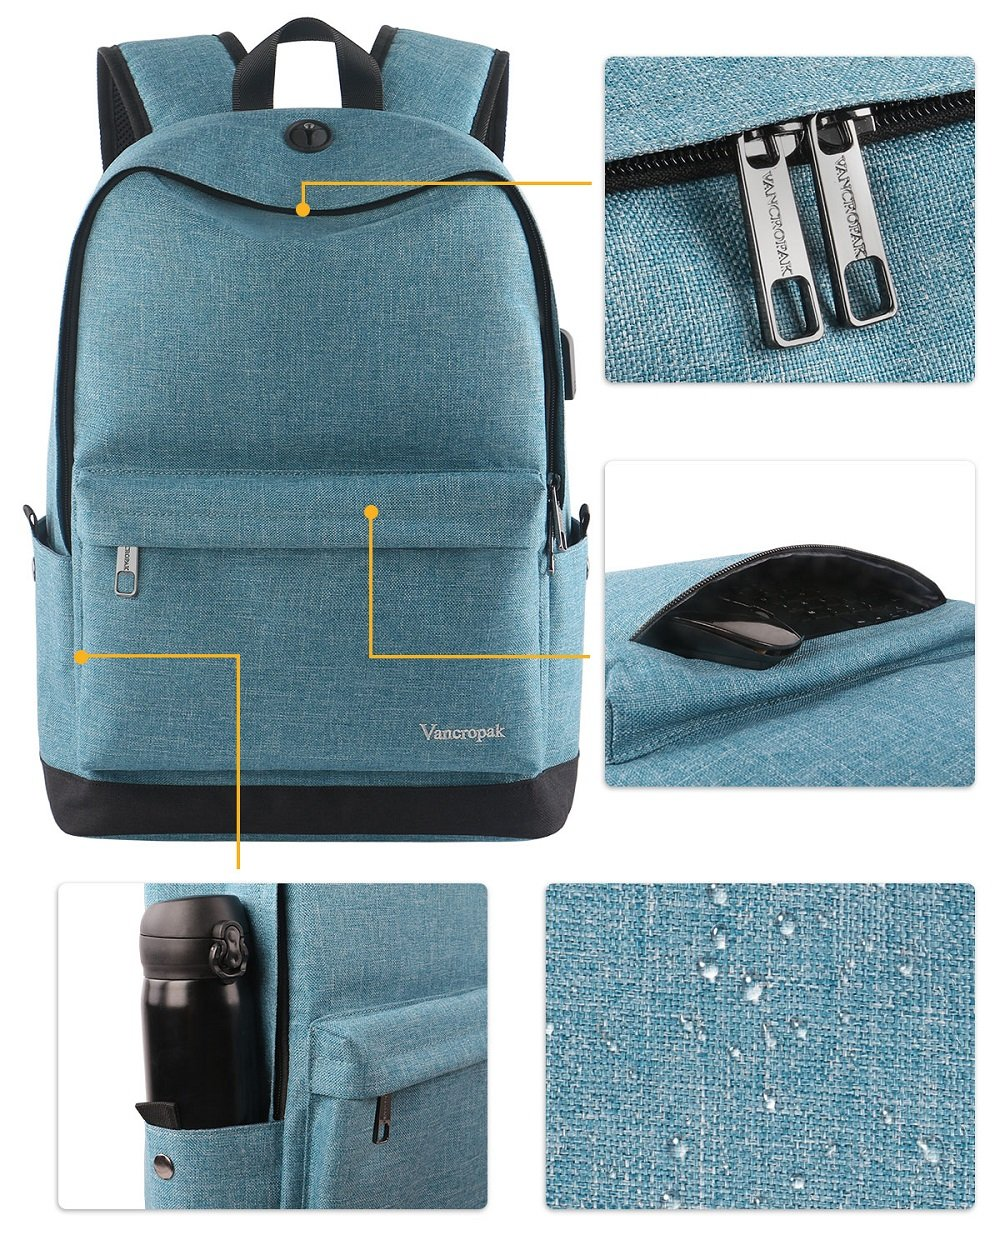 High School Backpack, Middle Student Bag with USB Port for Men Women Teen, Causel Basic Bookbag Fits 15.6 Inch Laptop/Notebook Designed for Travel Work Study - Purplish Blue by Vancropak (Image #4)